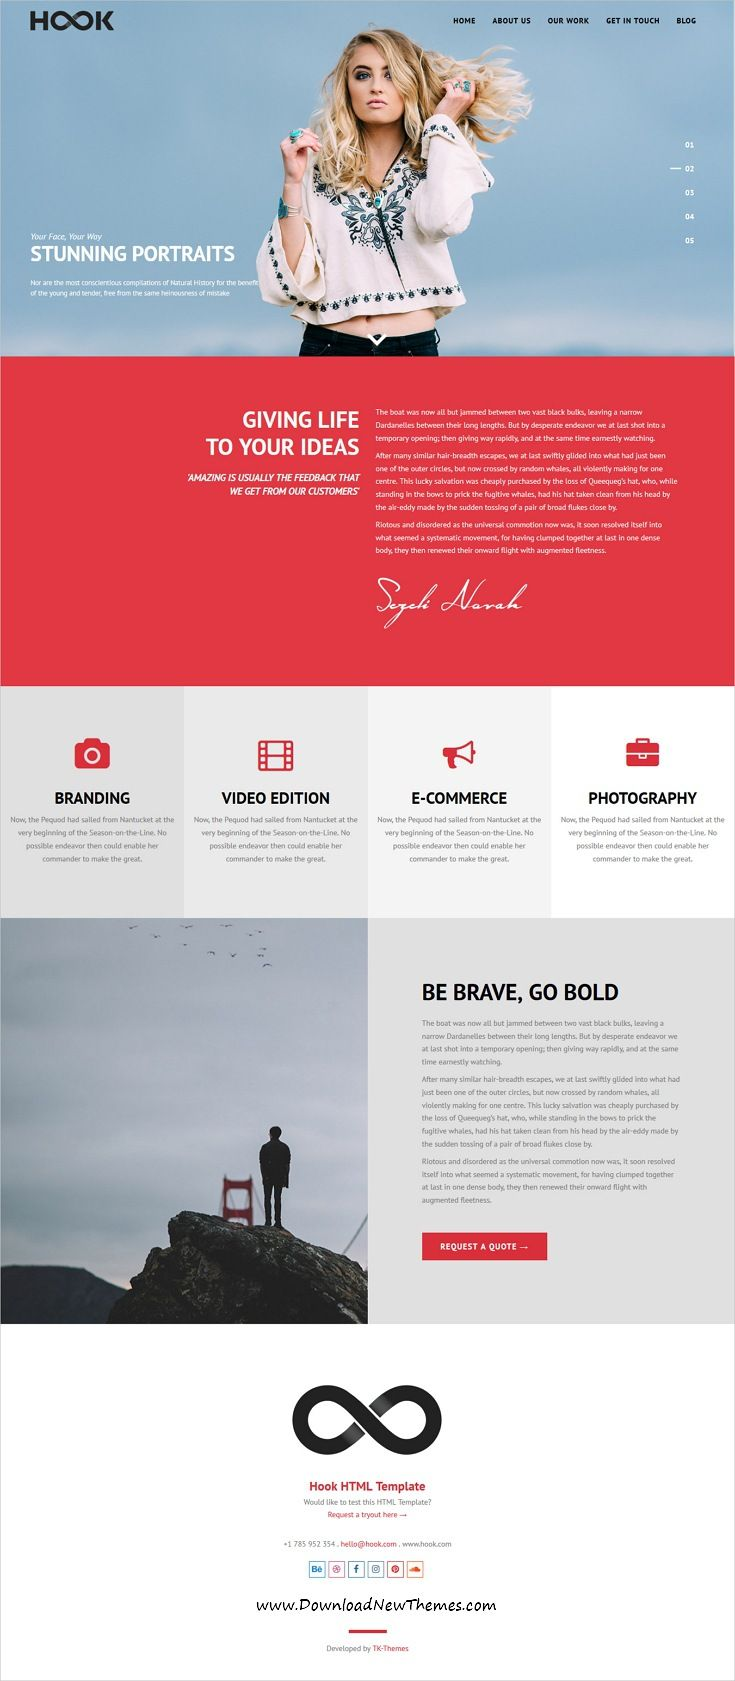 Hook is clean and modern design responsive multipurpose bootstrap HTML #template for creative #agency website with 21+ niche homepage layouts to live preview & download click on Visit  #webdevelopment